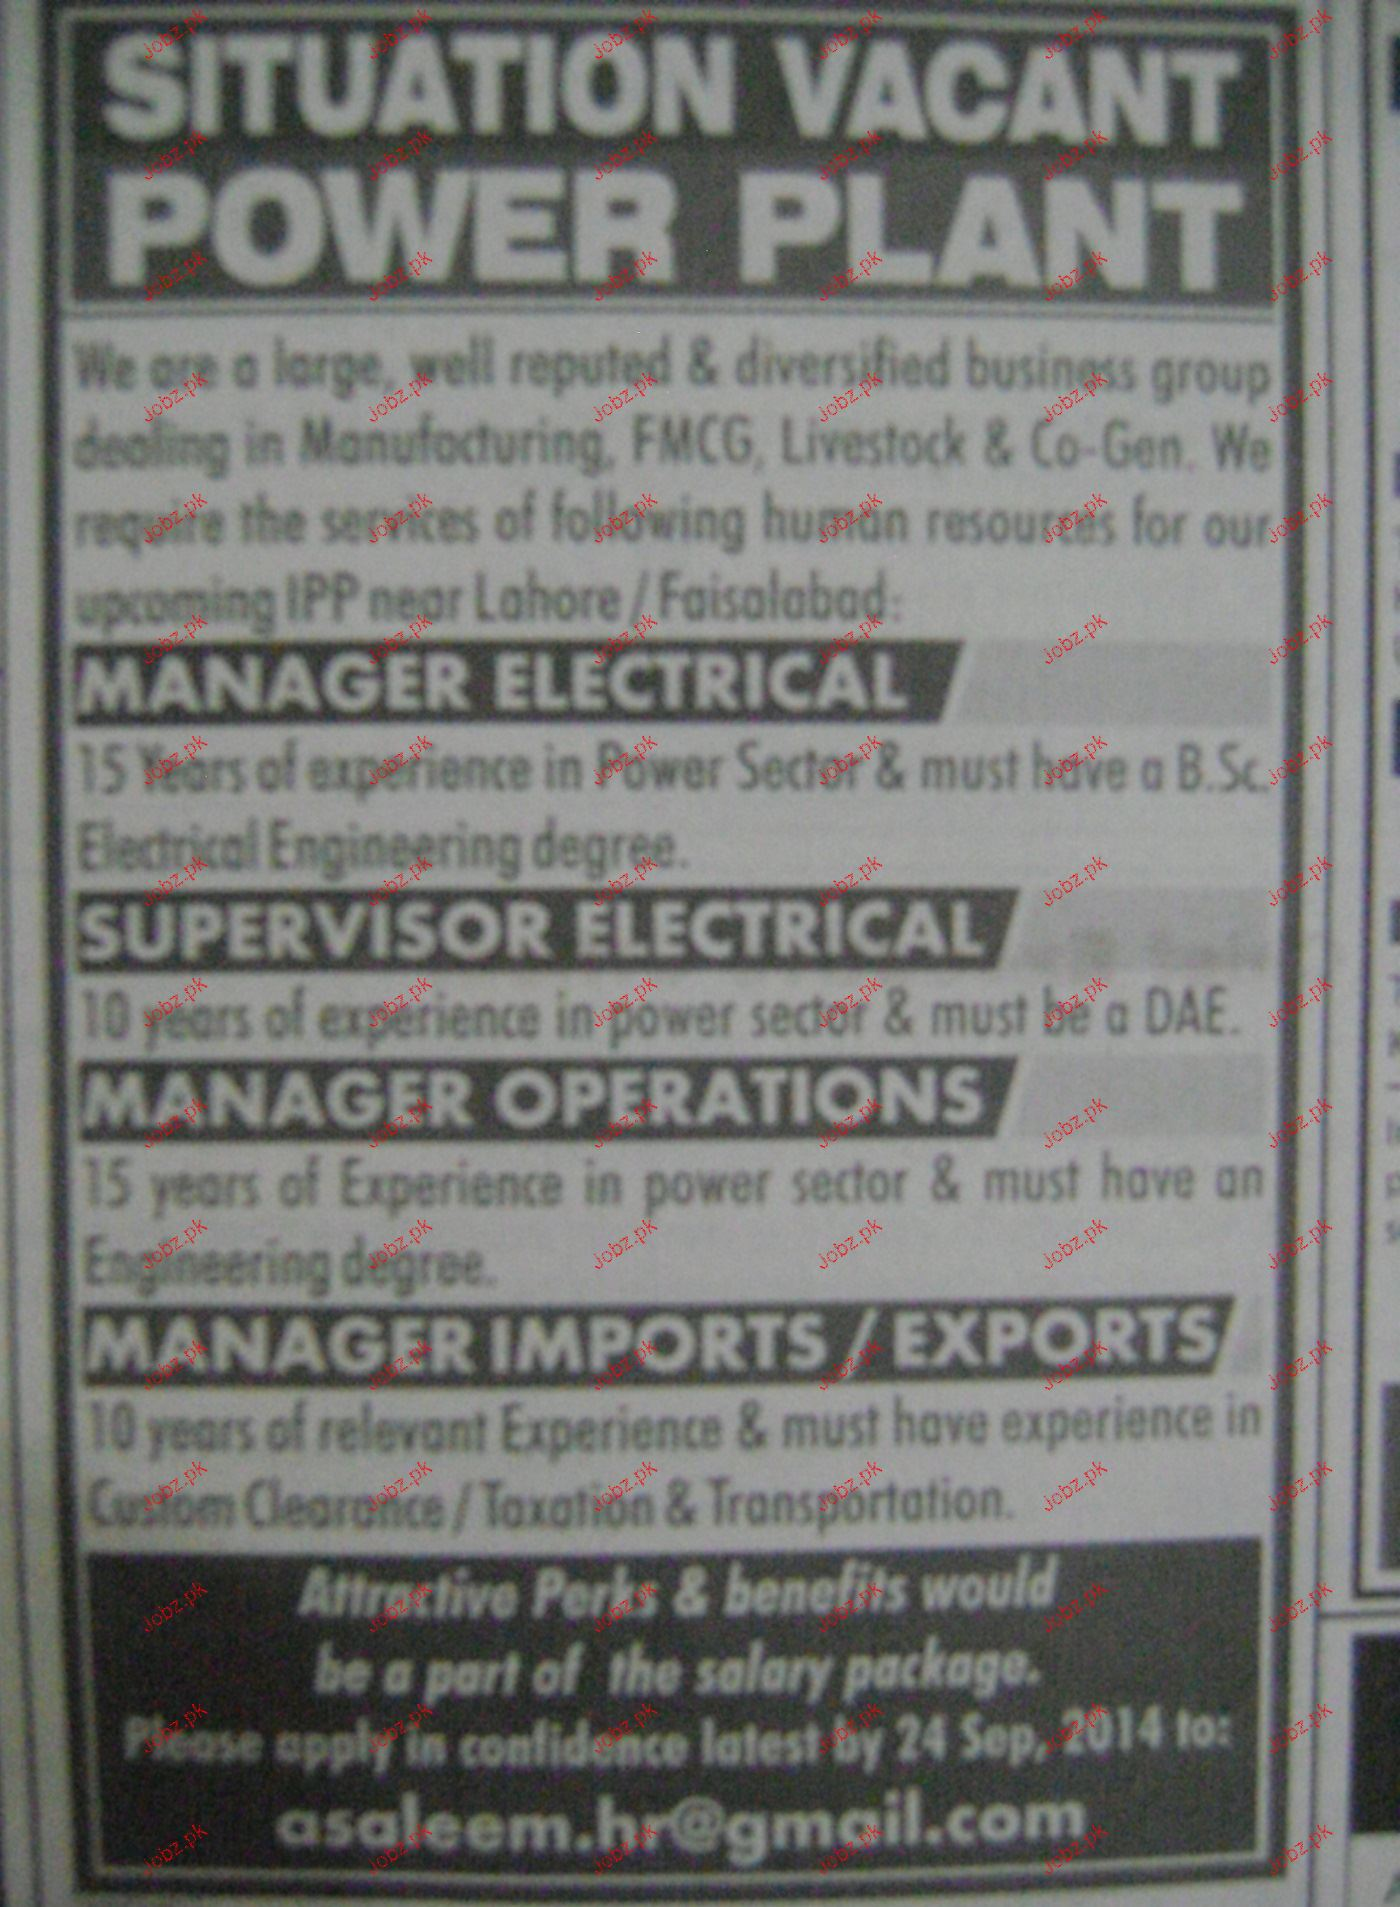 Manager Electrical, Supervisor Electrical Job Opportunity